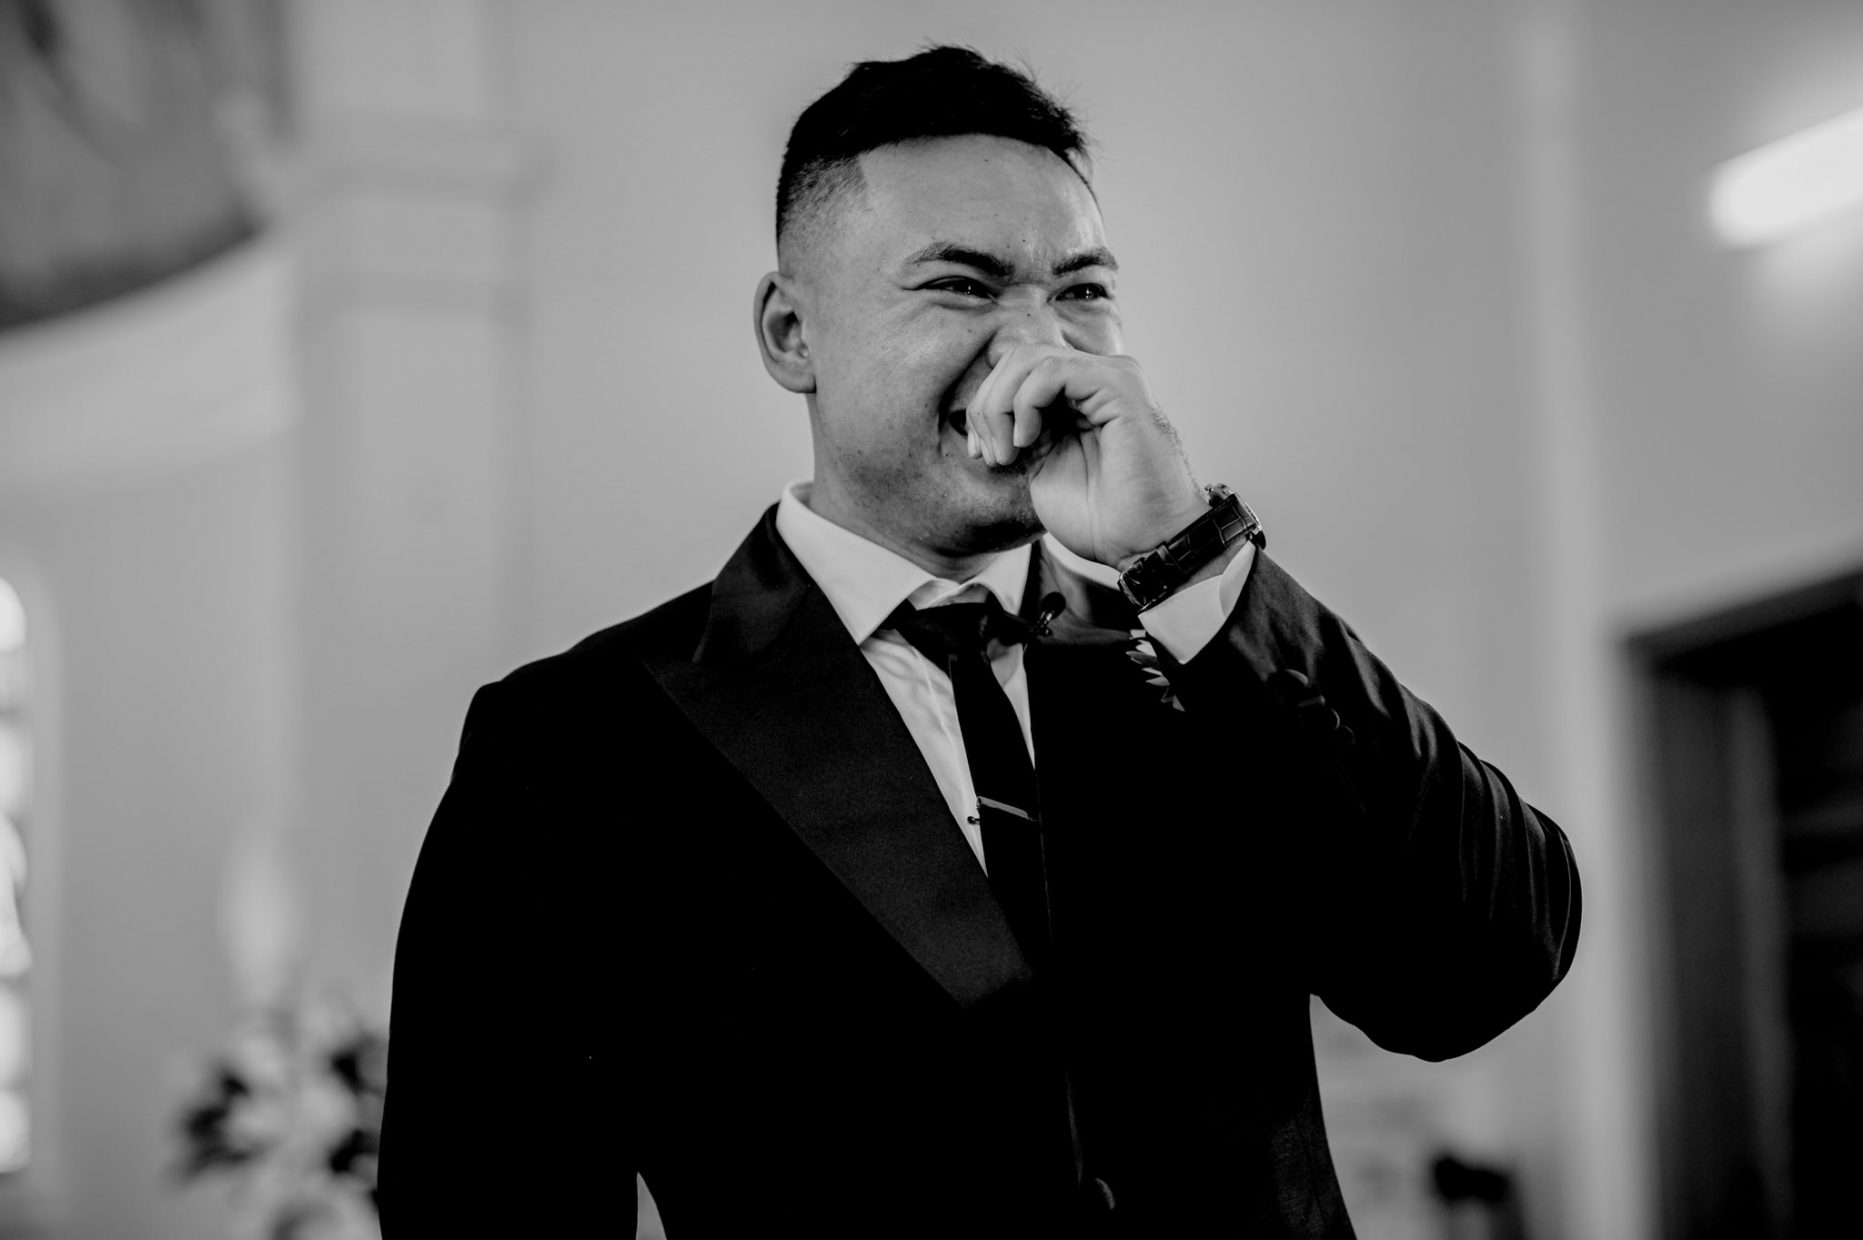 Asian man in suit cries and laughs with hand up to face